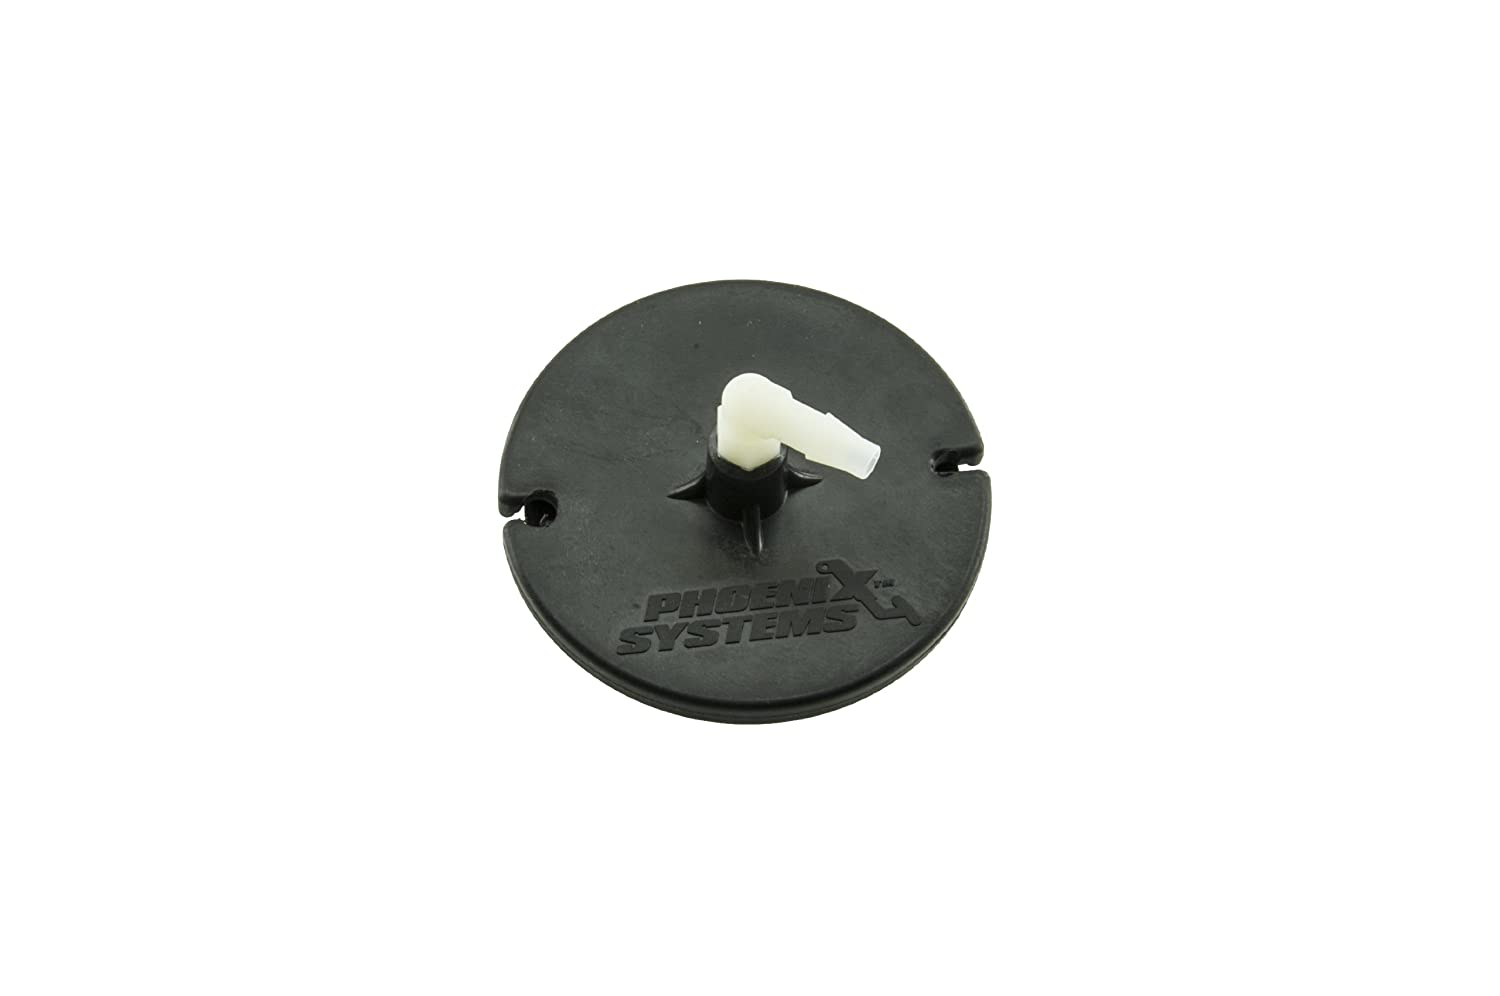 Phoenix Systems 6003-B Motorcycle Master Cylinder Adapter